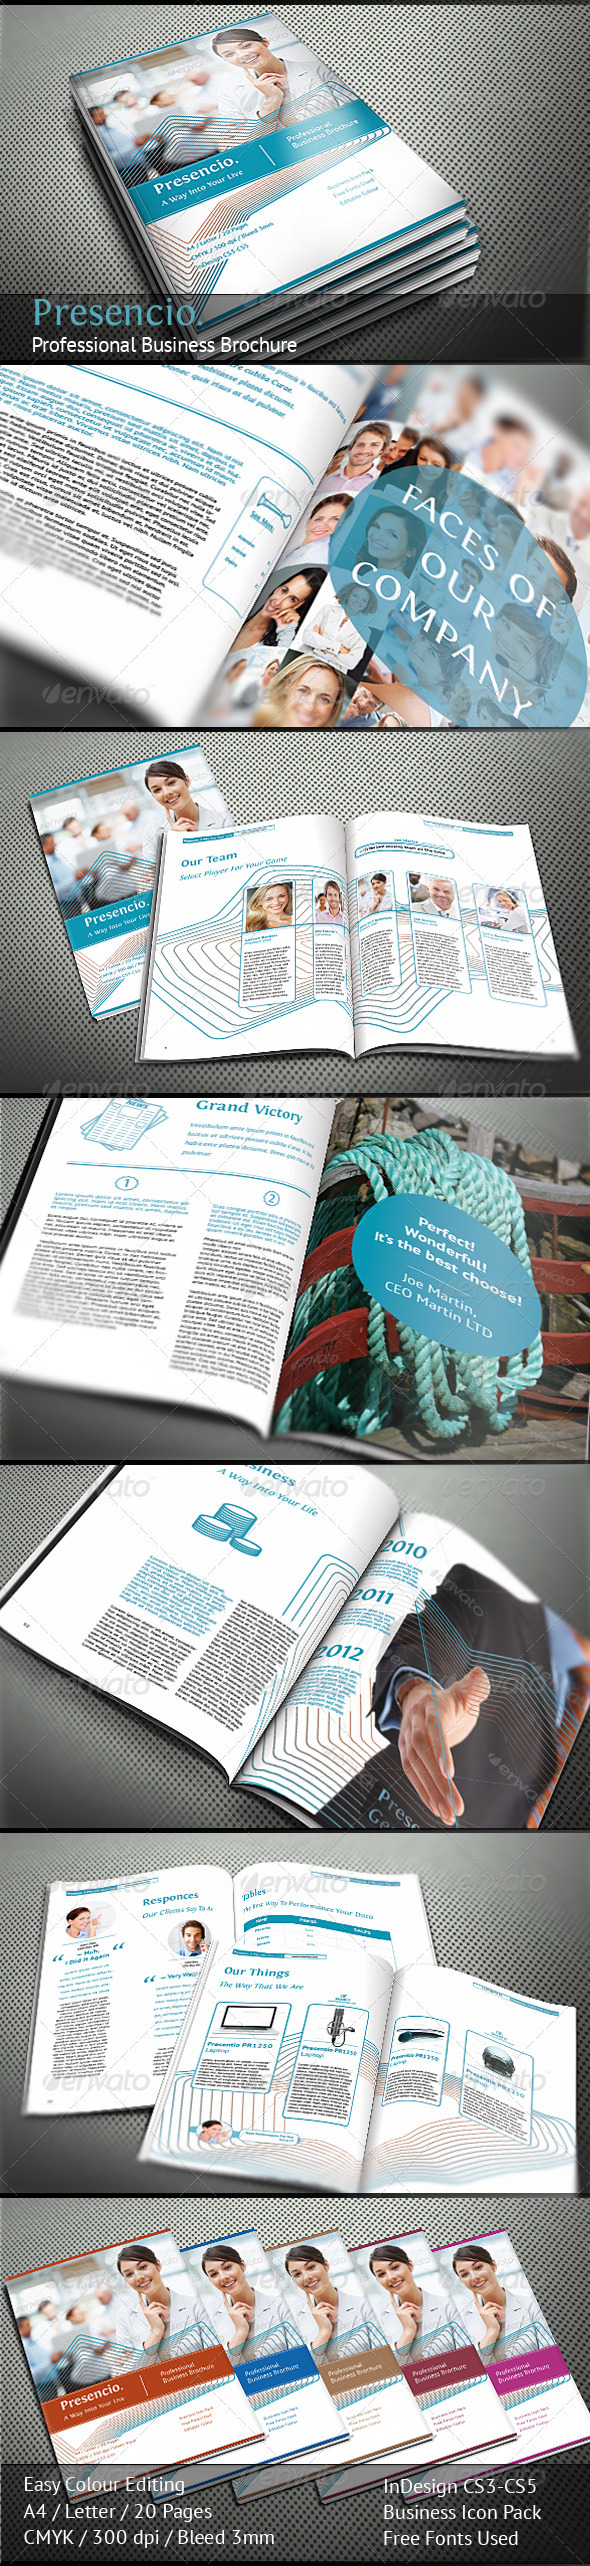 Presencio – Professional Business Brochure - Corporate Brochures